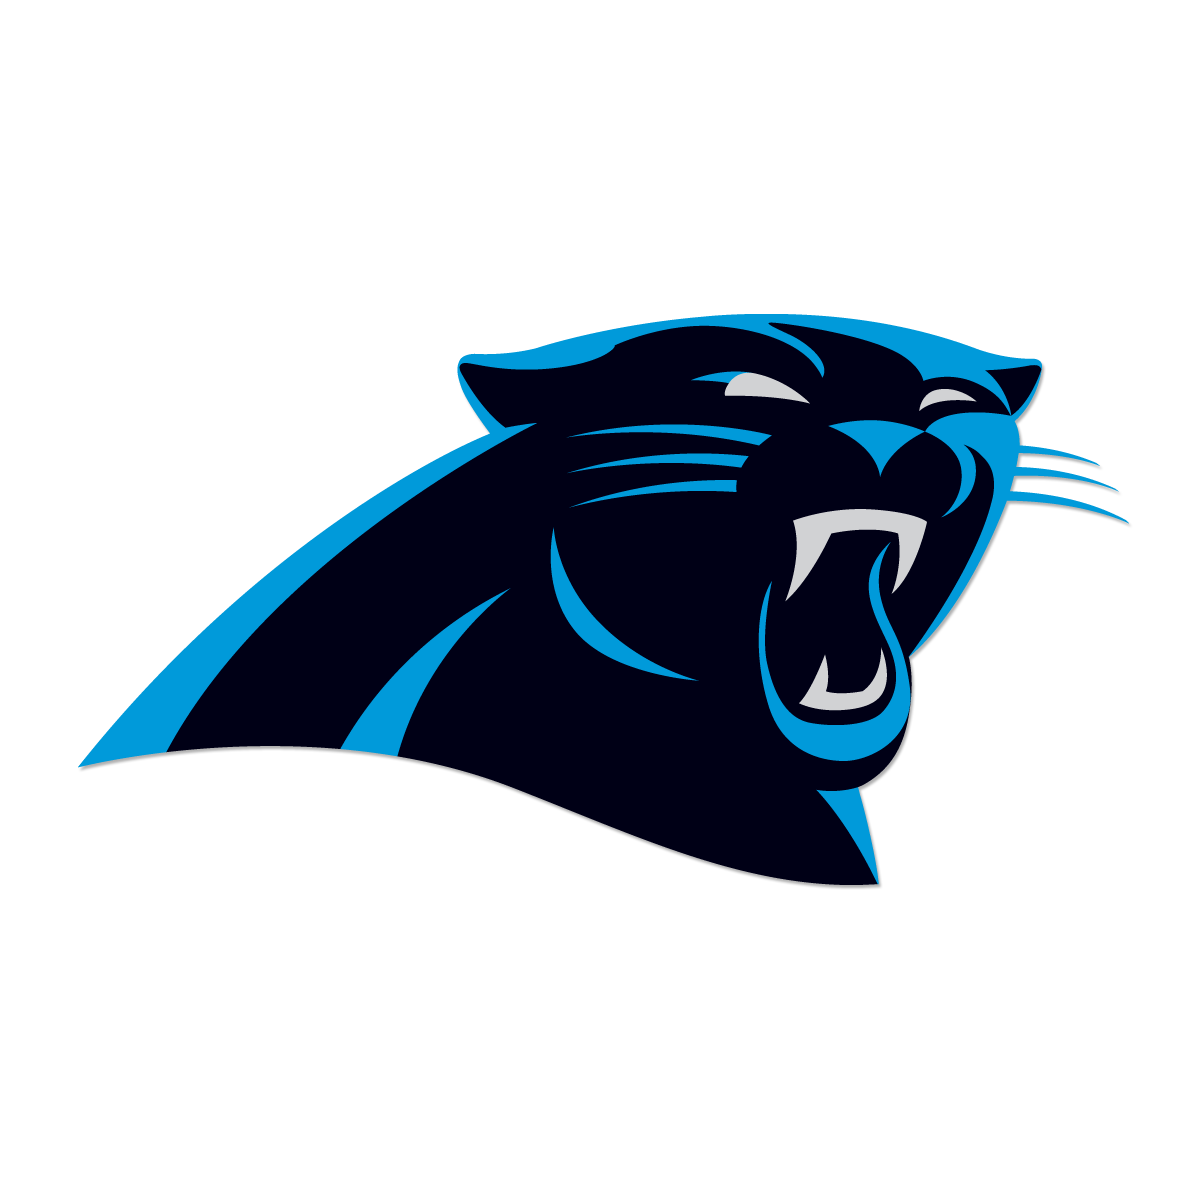 HQ Carolina Panthers Wallpapers | File 37.64Kb